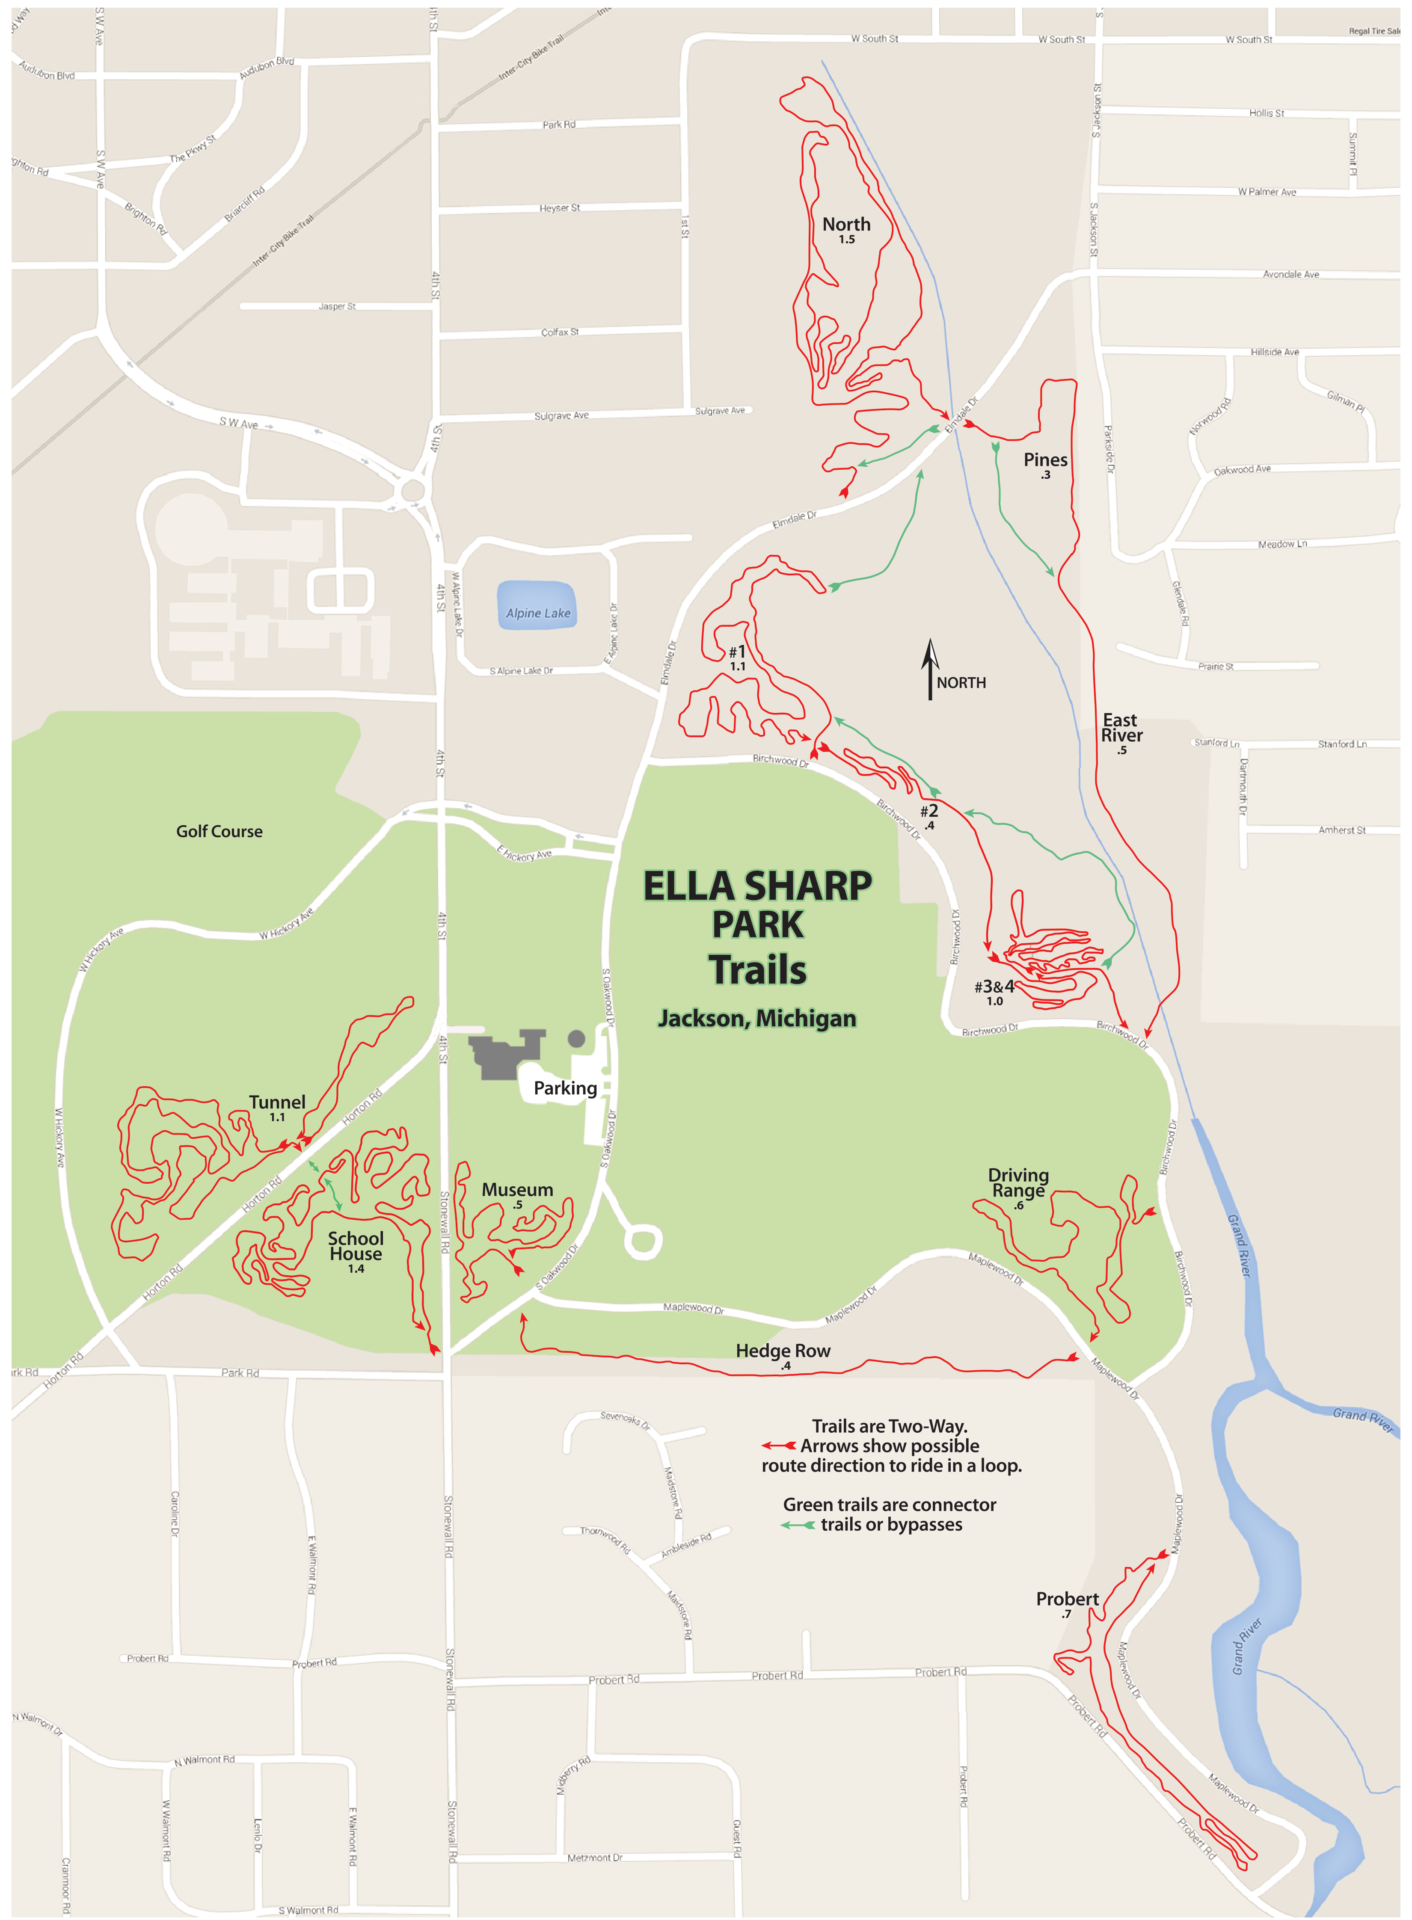 Ella Sharp mtb trails